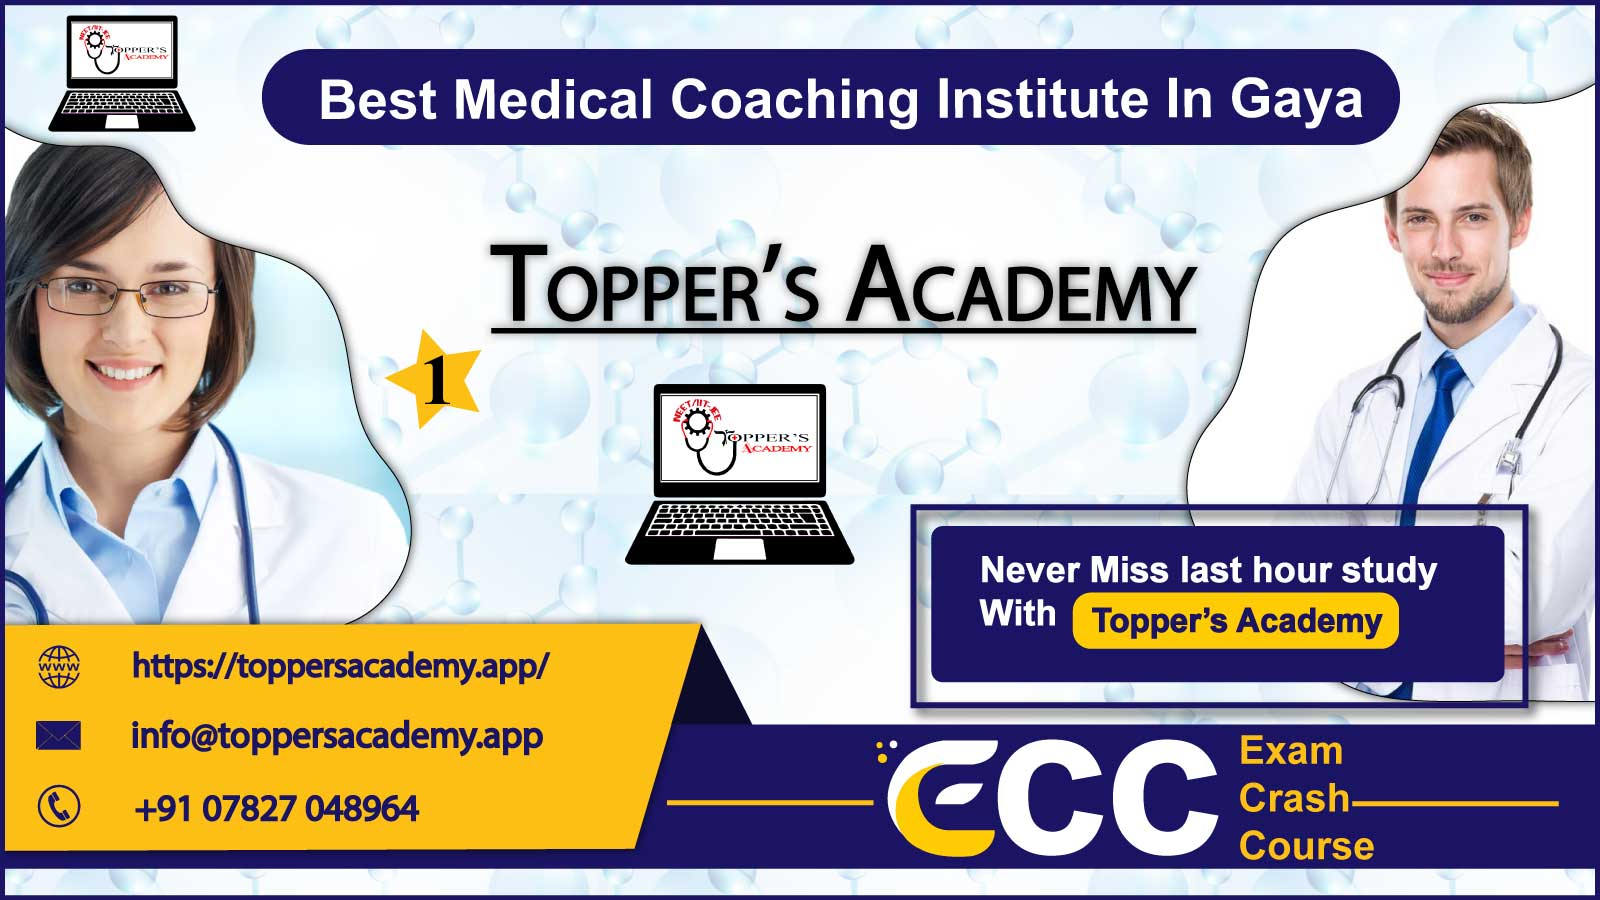 Toppers Academy